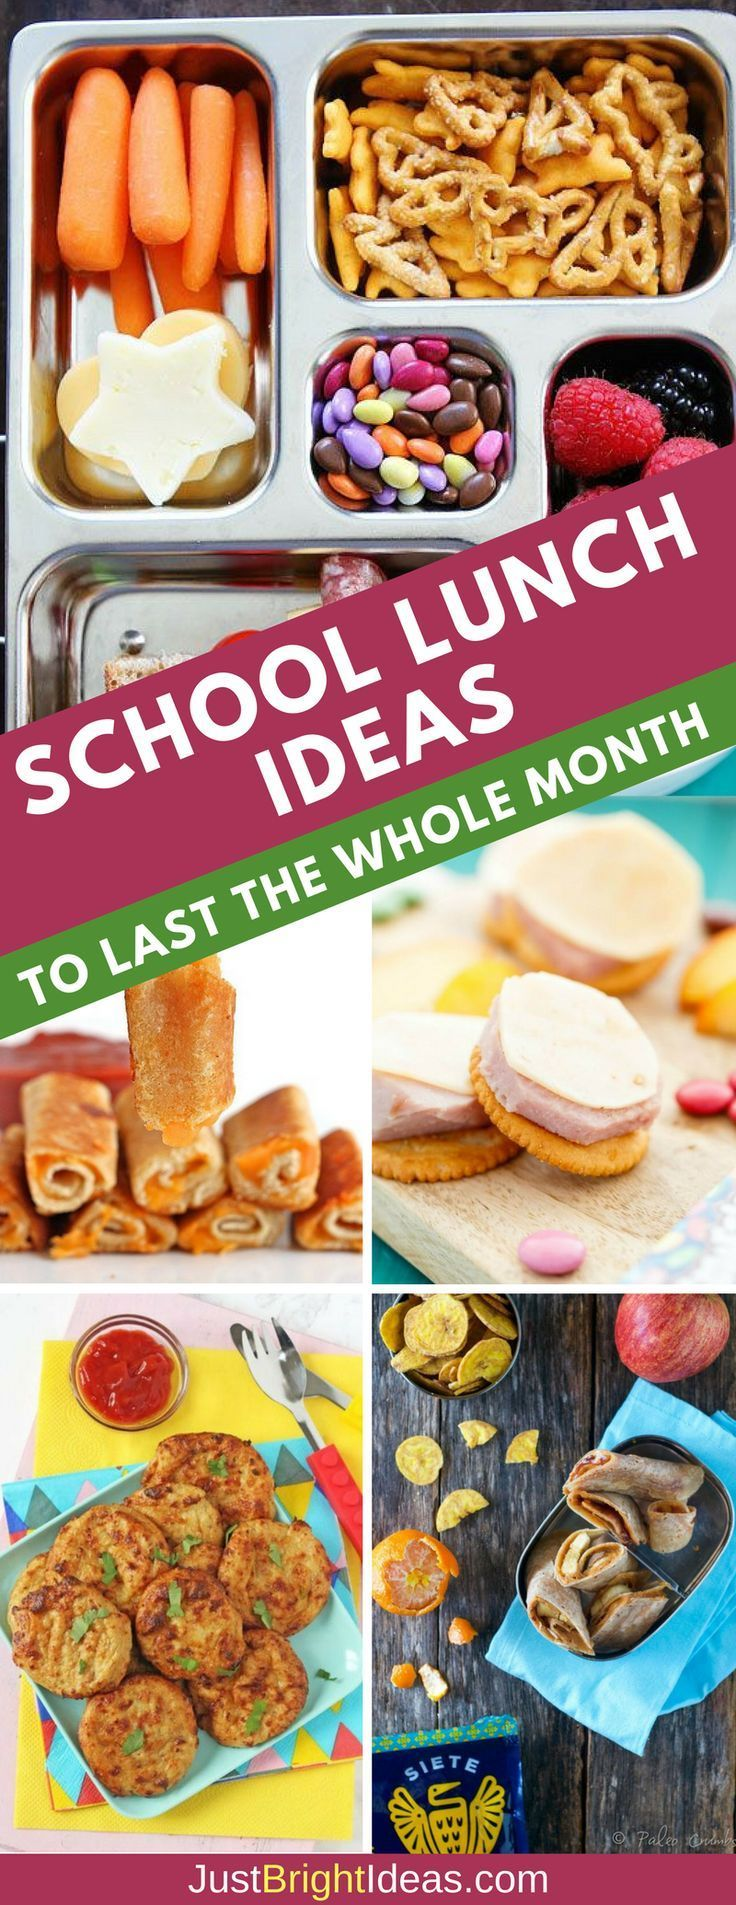 Easy School Lunch Ideas for Kids - One Whole Month of Ideas with No Repeats! images